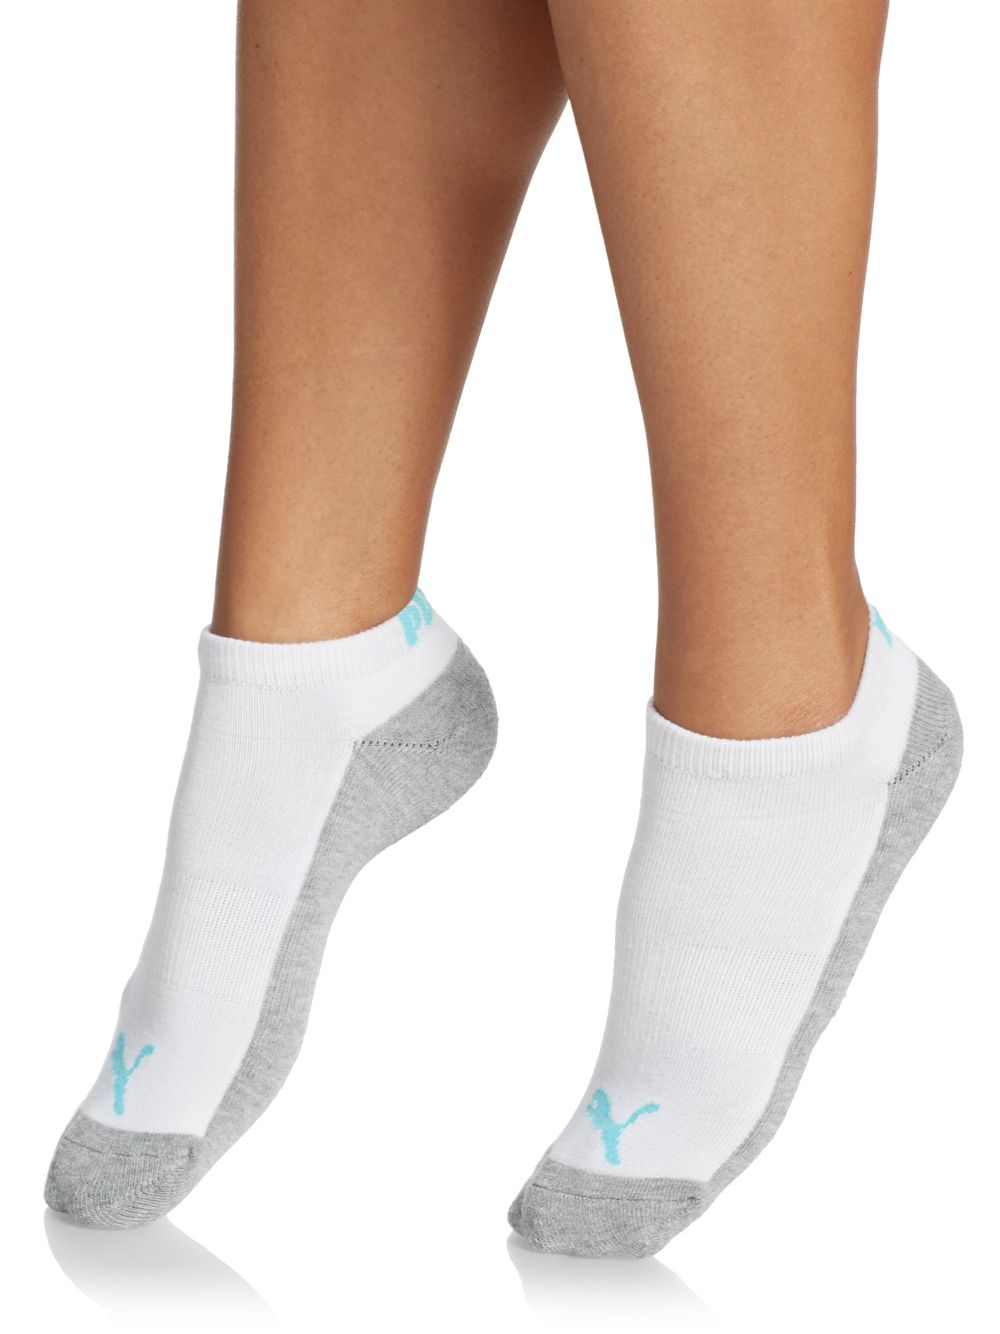 Puma Moisture Control Ankle Socks/6-pack in White